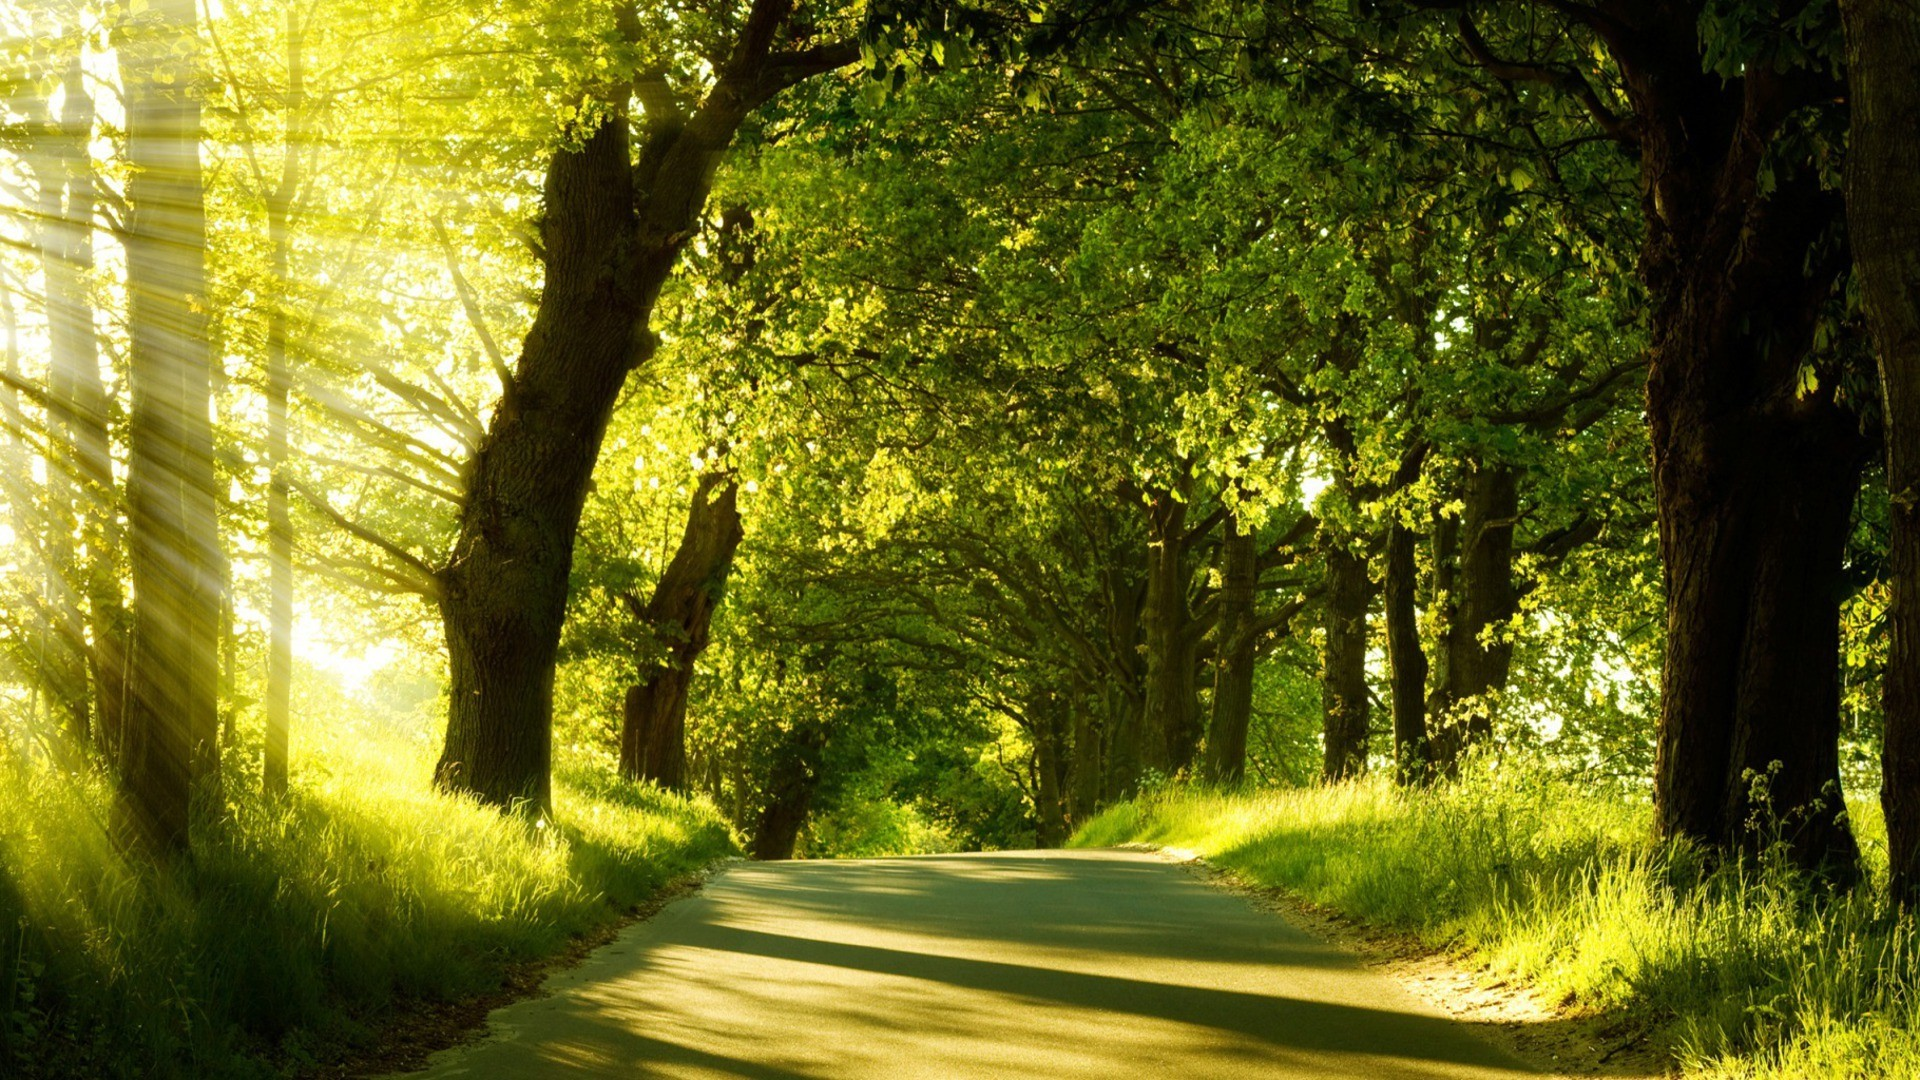 Res: 1920x1080, Image for Landscape Photography Trees Background Wallpaper